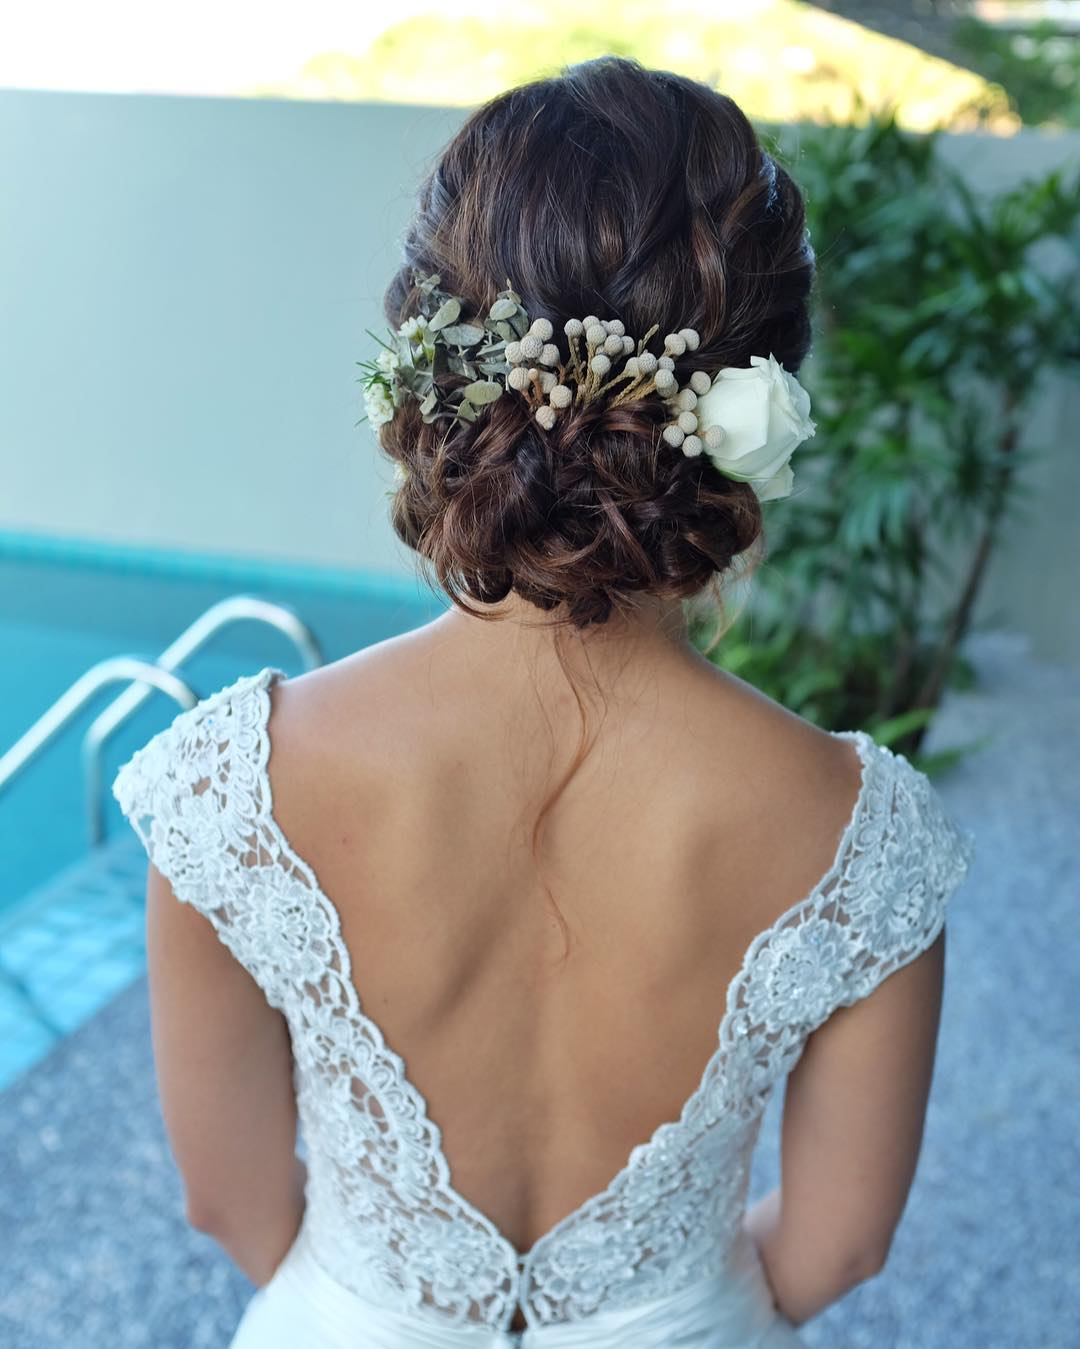 Wedding Styles: 30+ Beach Wedding Hairstyles Ideas, Designs